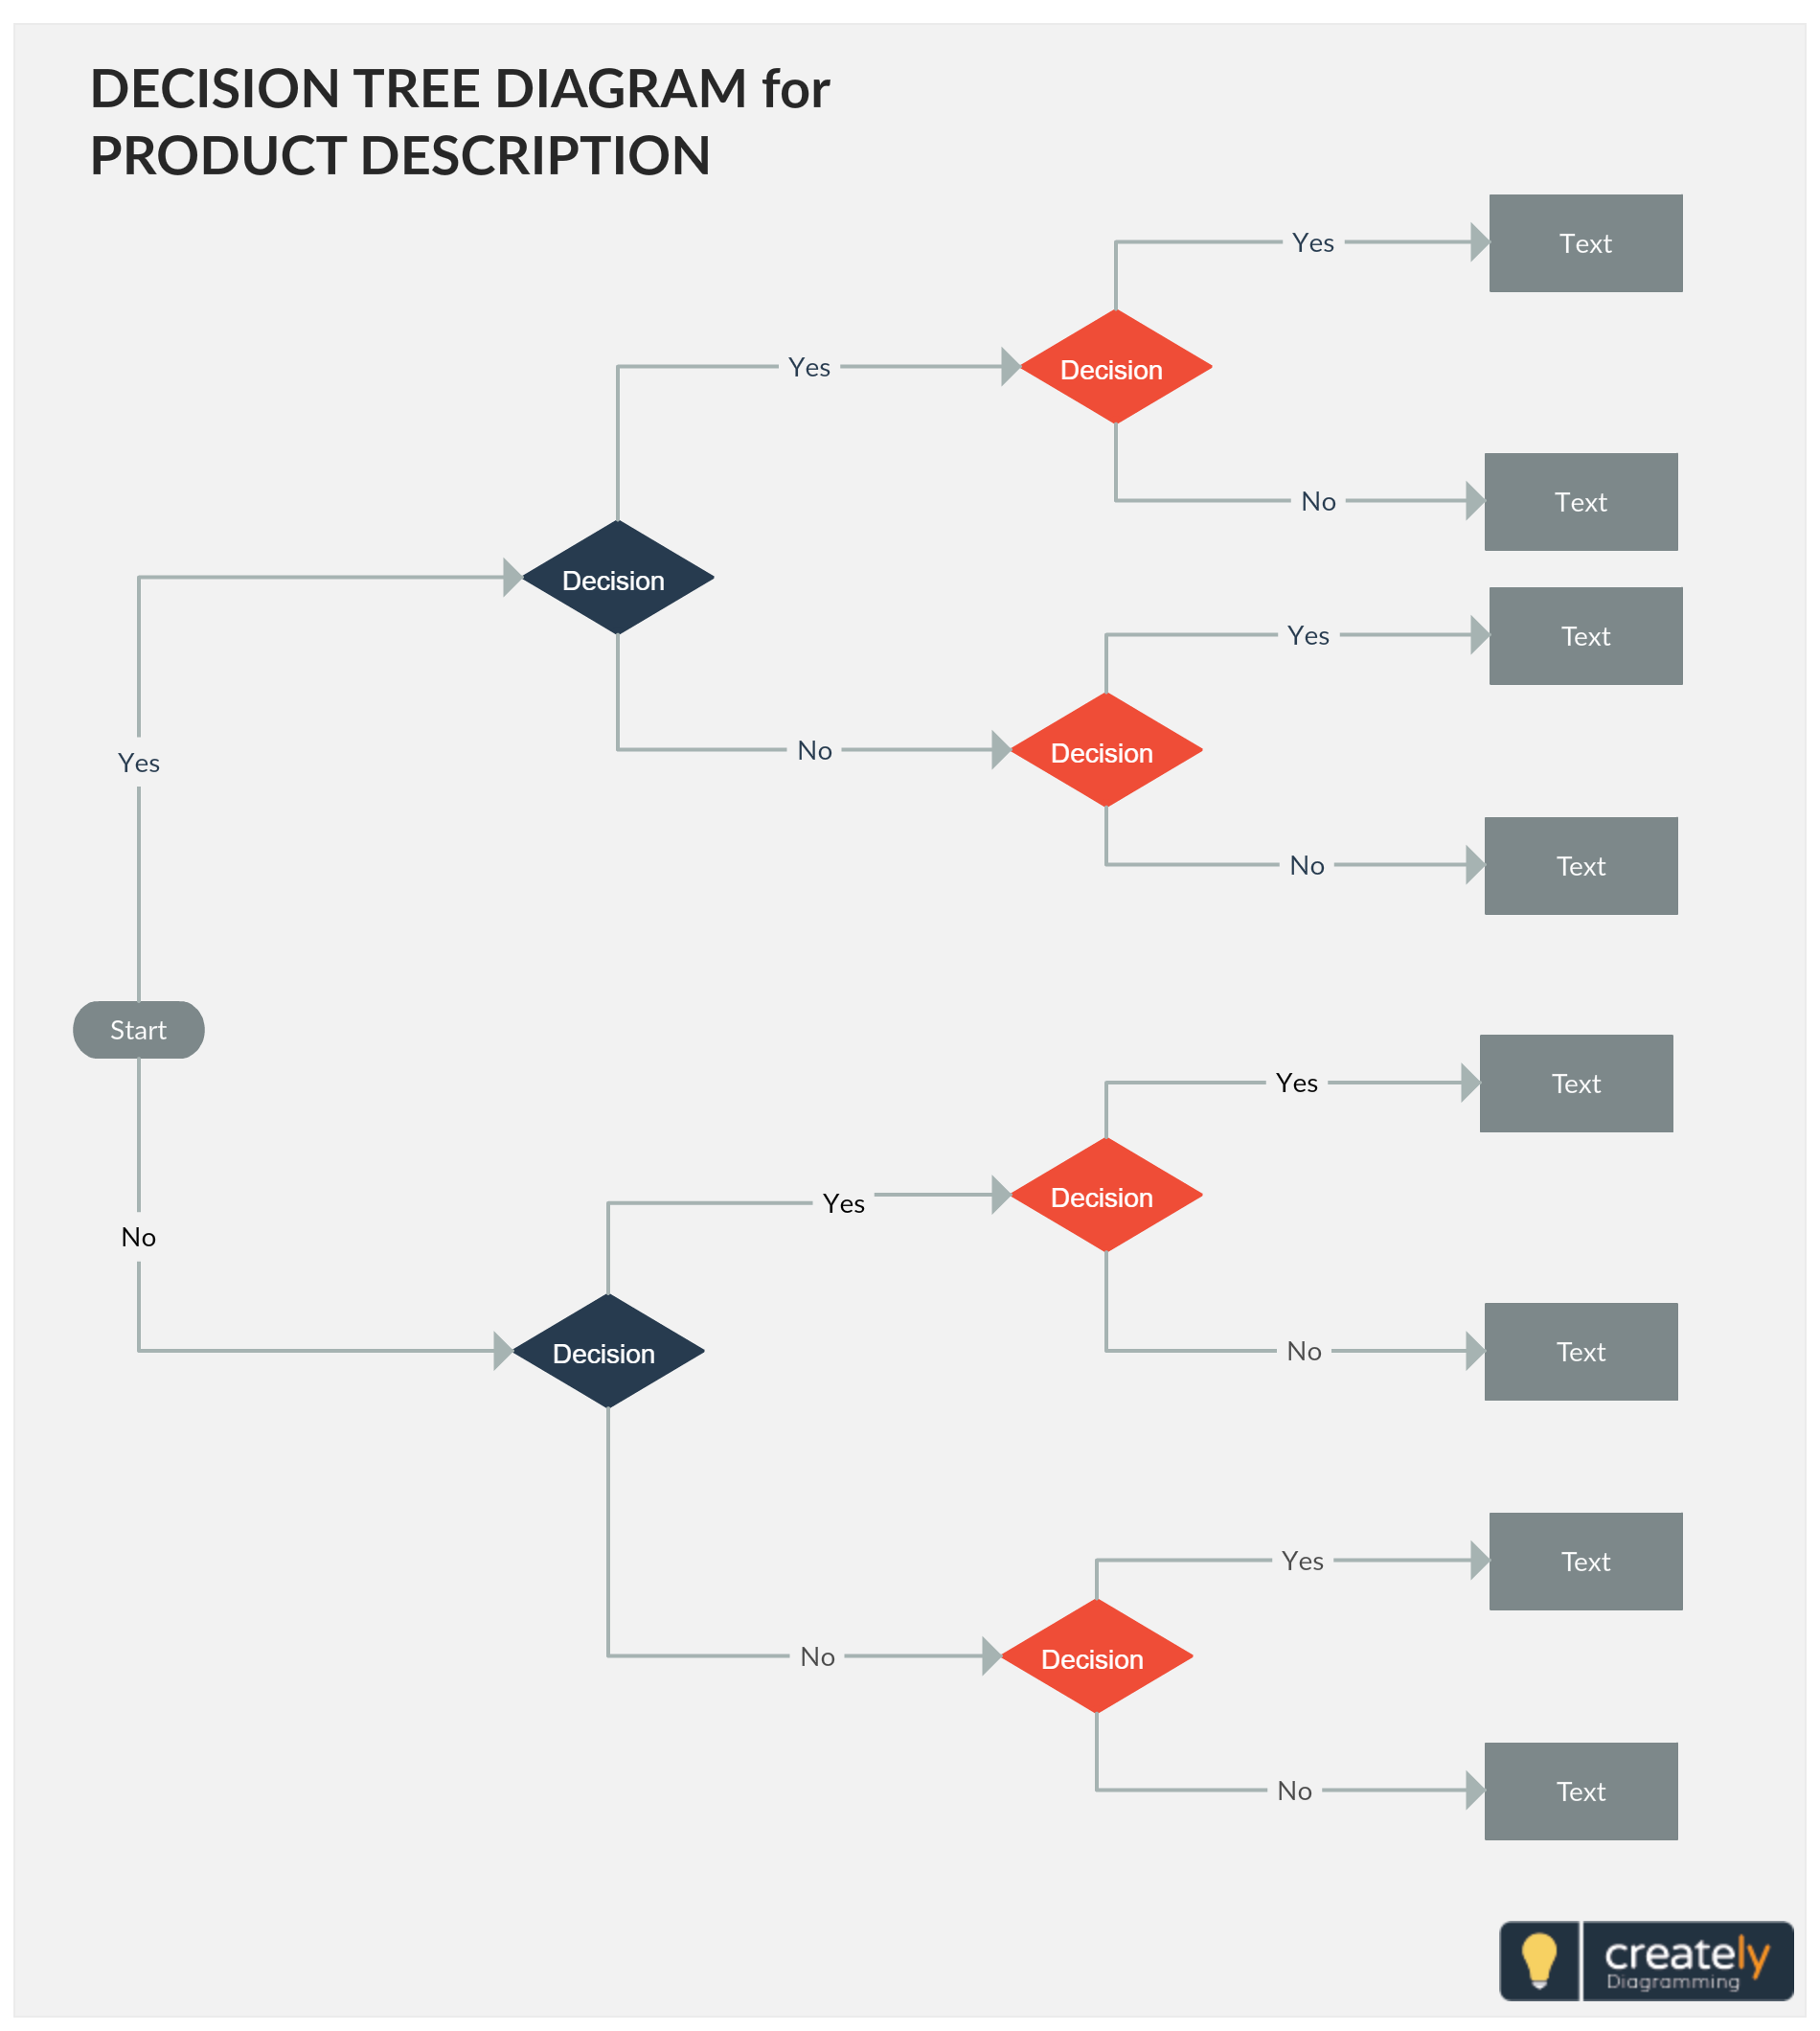 hight resolution of decision tree diagram template all sub elements are branching out from the key element or concept and can be used to illustrate the work progress of a